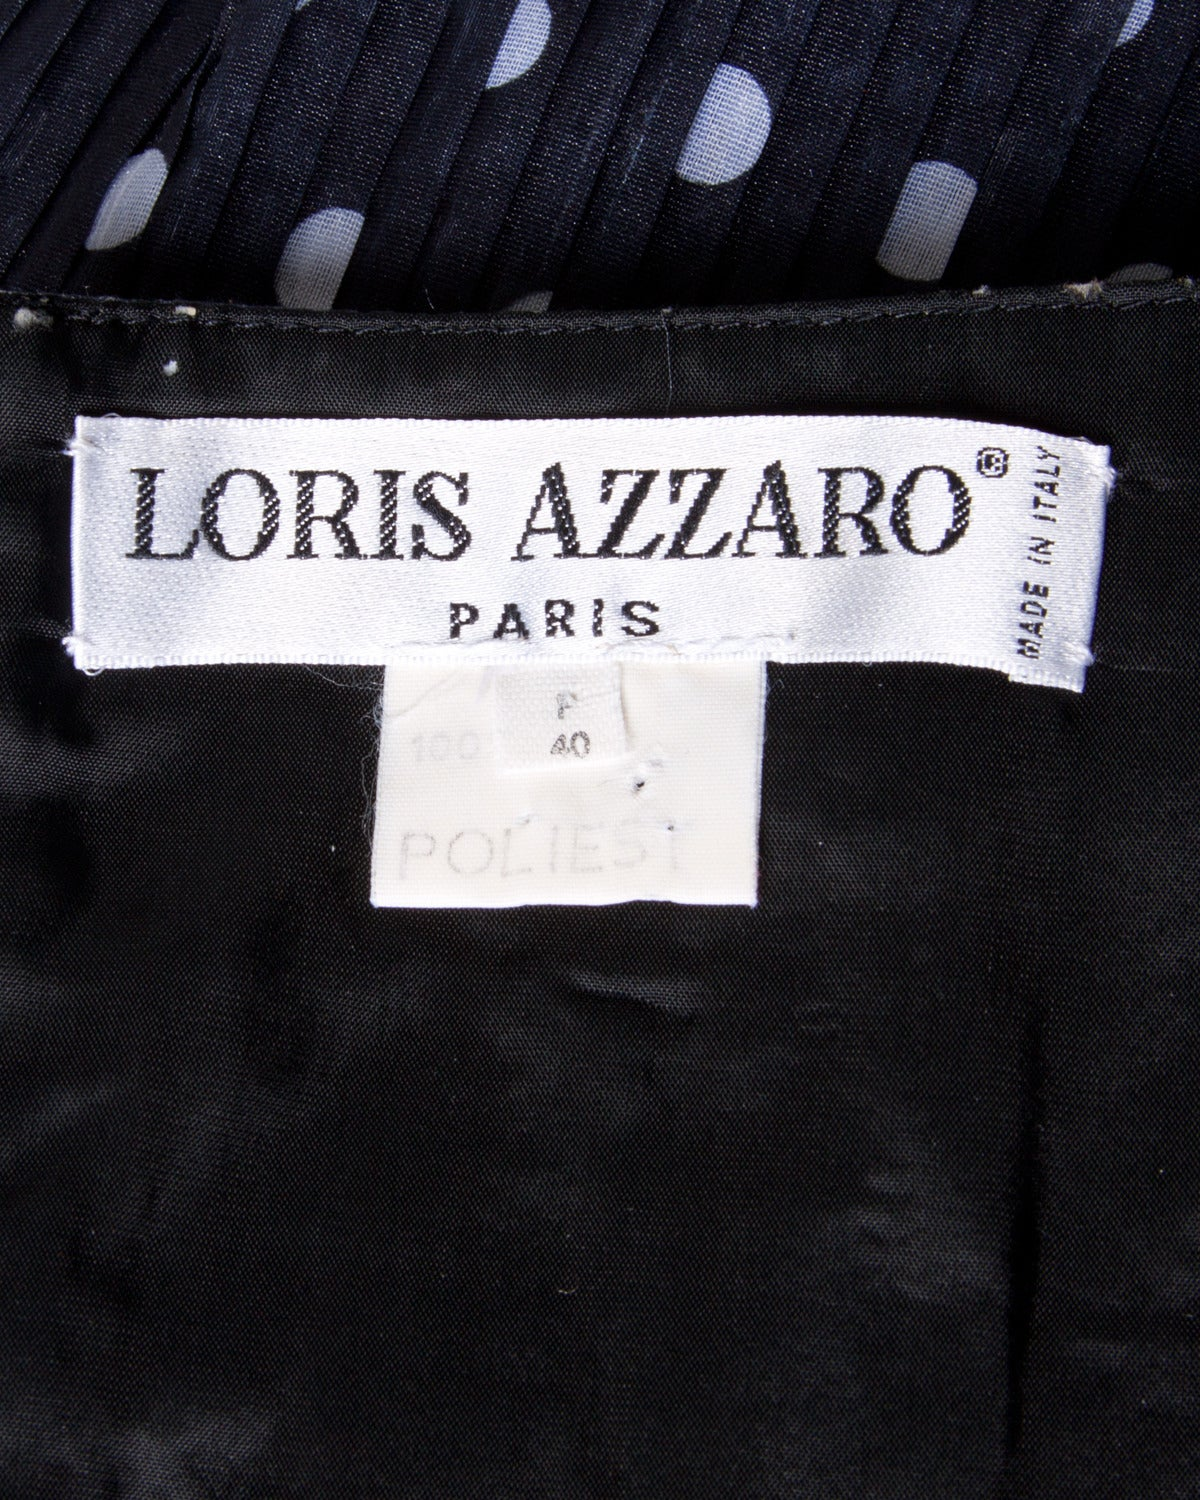 Loris Azzaro Vintage Polka Dot Bustier Top + Skirt 2-Piece Dress Ensemble In Excellent Condition For Sale In Sparks, NV